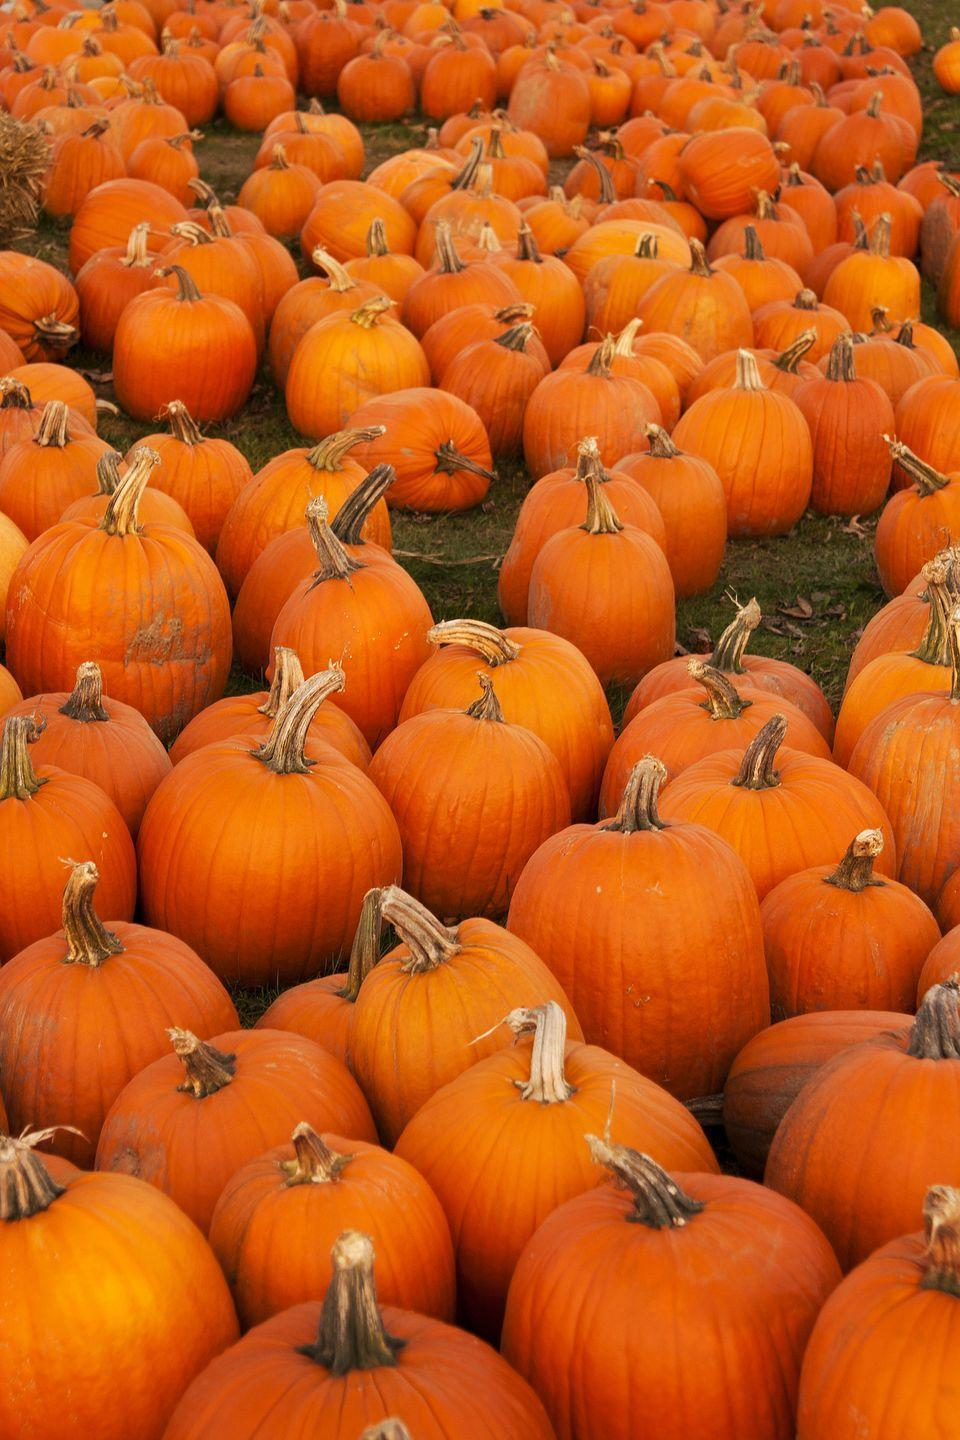 """<p><strong>Johnston, Rhode Island</strong></p><p>Along with scoping out the many pumpkins at <a href=""""https://salisburyfarm.com/giant-corn-maze/"""" rel=""""nofollow noopener"""" target=""""_blank"""" data-ylk=""""slk:Salisbury Farm"""" class=""""link rapid-noclick-resp""""><strong>Salisbury Farm</strong></a>, you can also work through the corn field maze — day or night. Their moonlight maze, which is put on in October, is a can't-miss opportunity to test your problem-solving skills under the stars. Tickets start at $9 for kids and $11 for adults on weekdays, $10 for kids and $12 for adults on weekends/holidays while children ages 2 and under are always free!</p><p><em>*This photo is not from Salisbury Farm.</em></p>"""